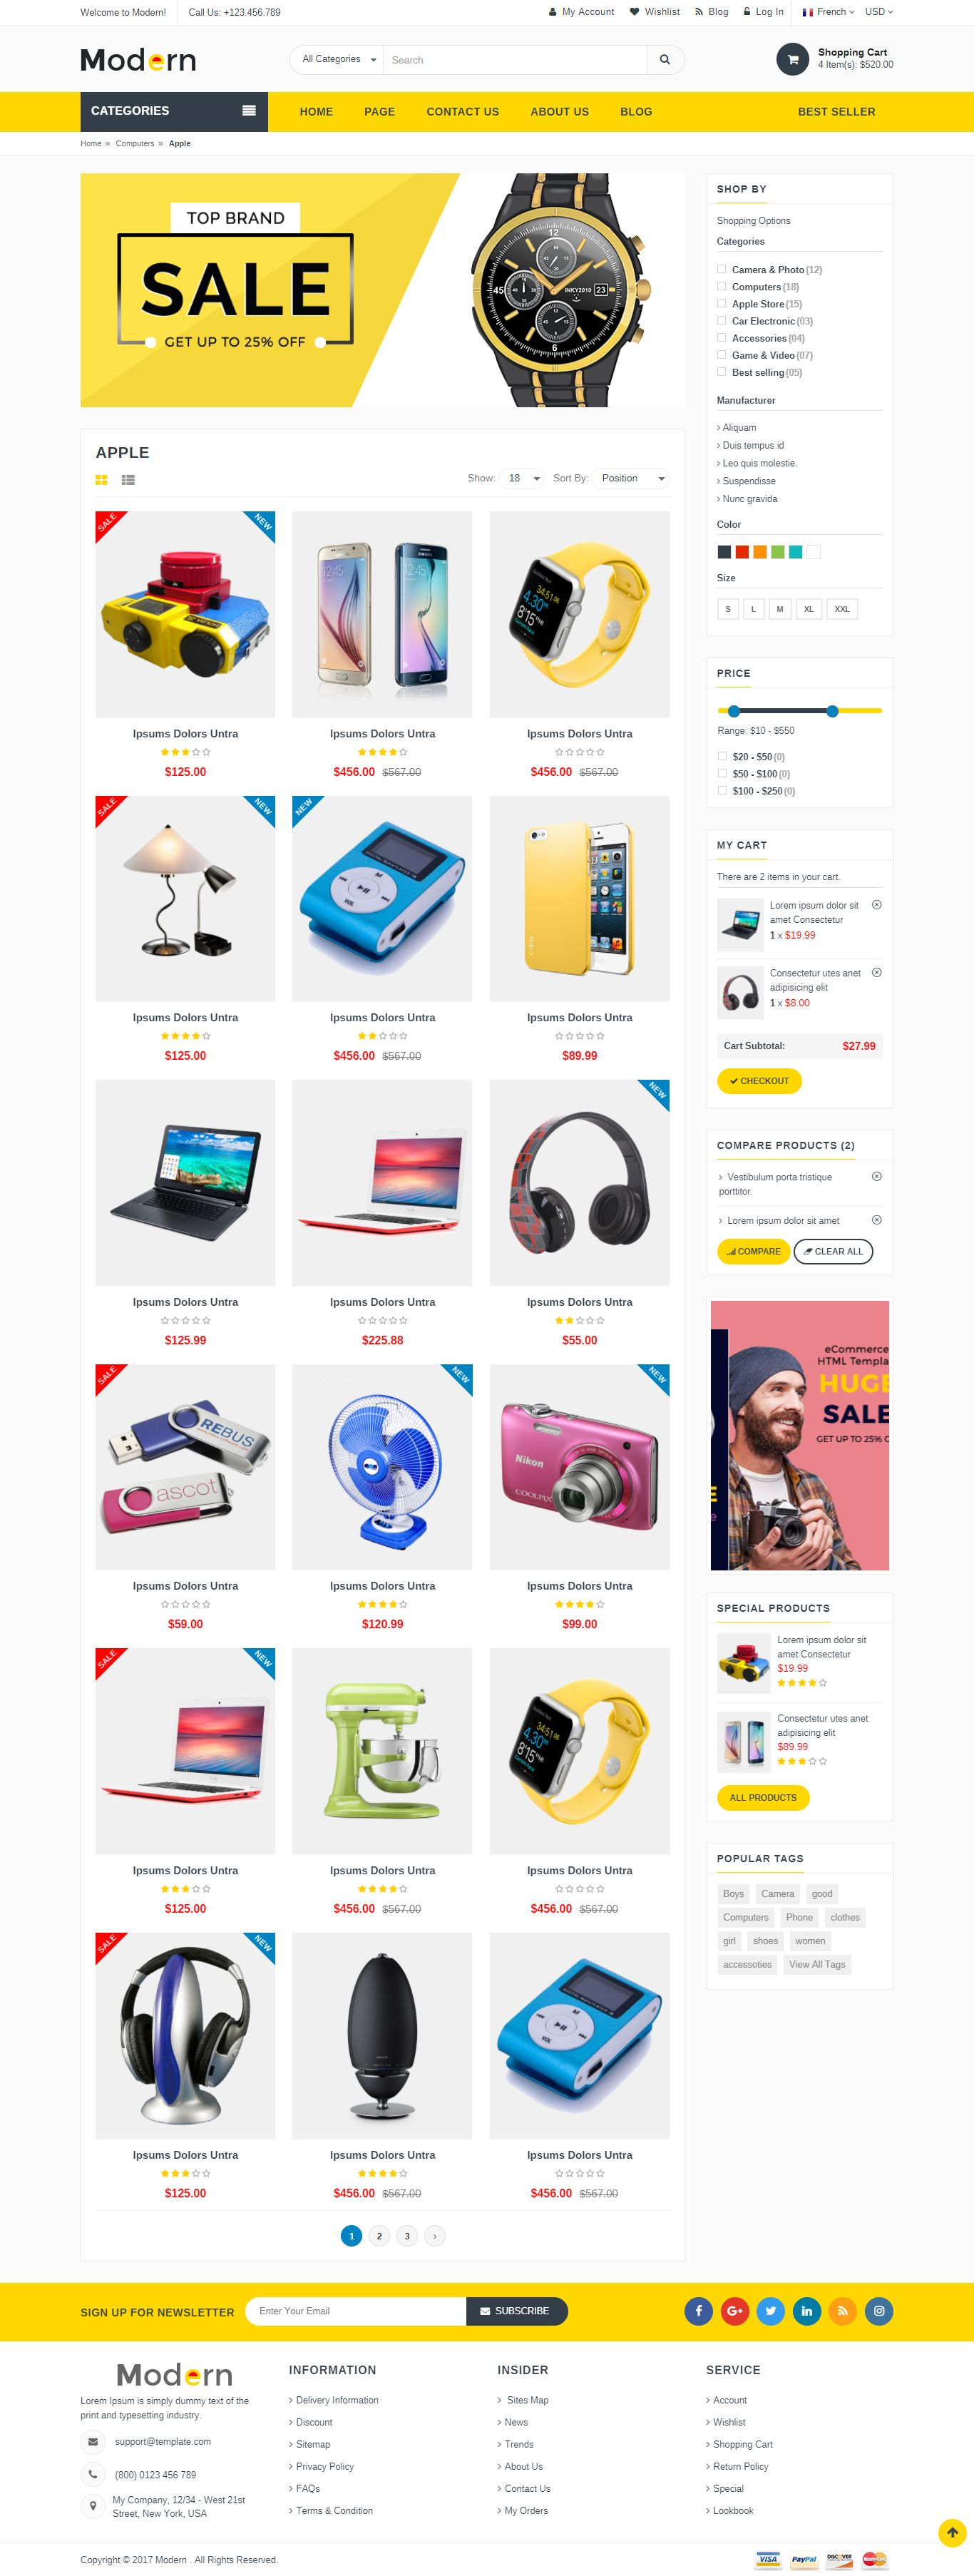 Modern - Multipurpose Website Template Screenshot 2